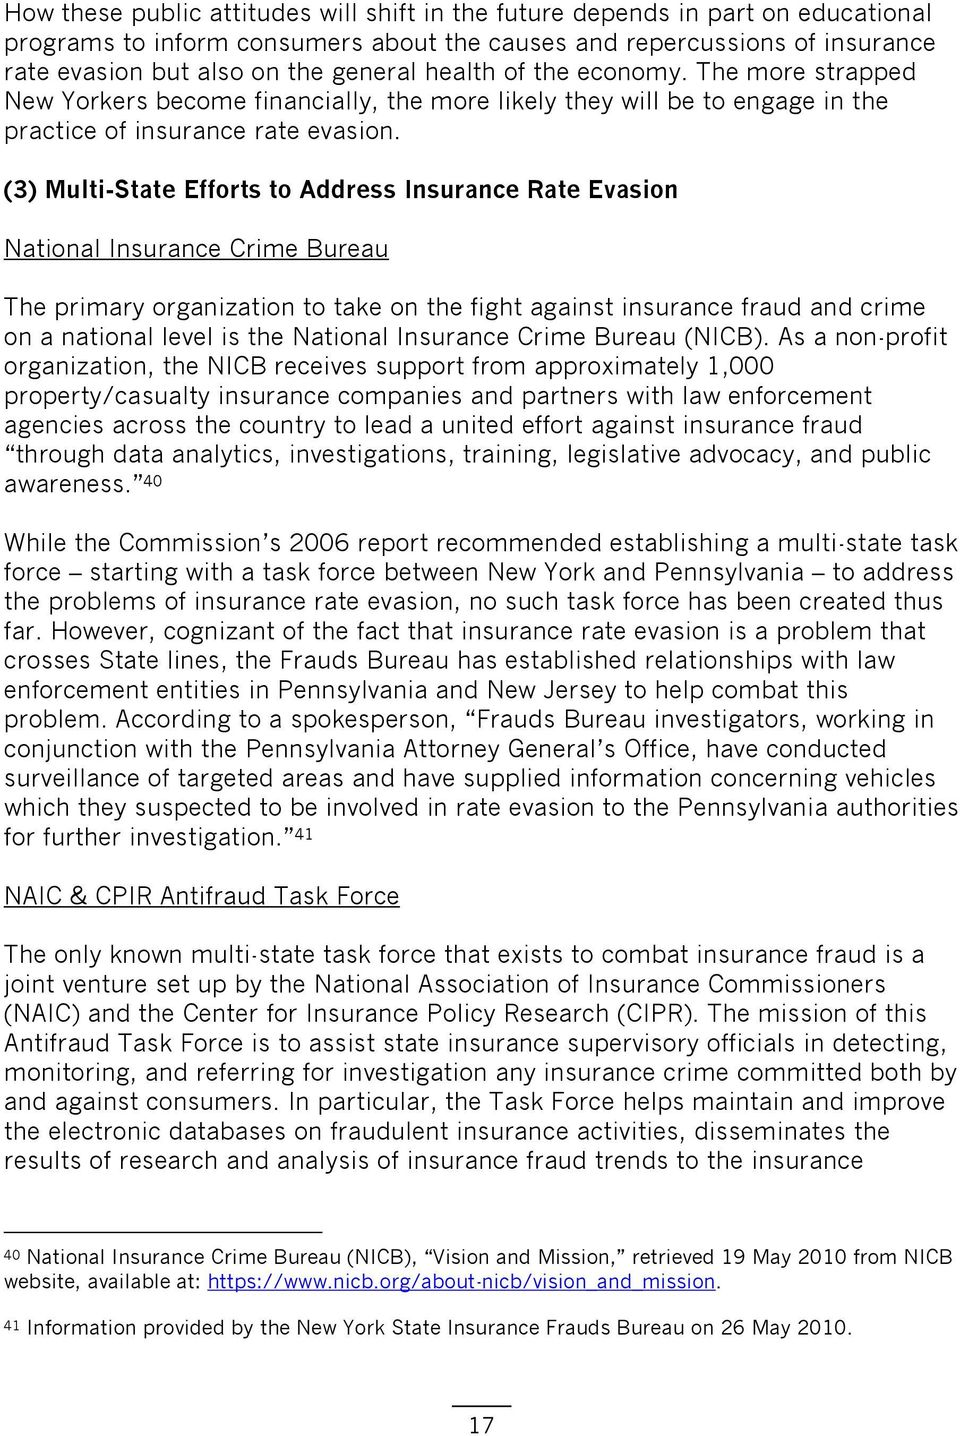 (3) Multi-State Efforts to Address Insurance Rate Evasion National Insurance Crime Bureau The primary organization to take on the fight against insurance fraud and crime on a national level is the